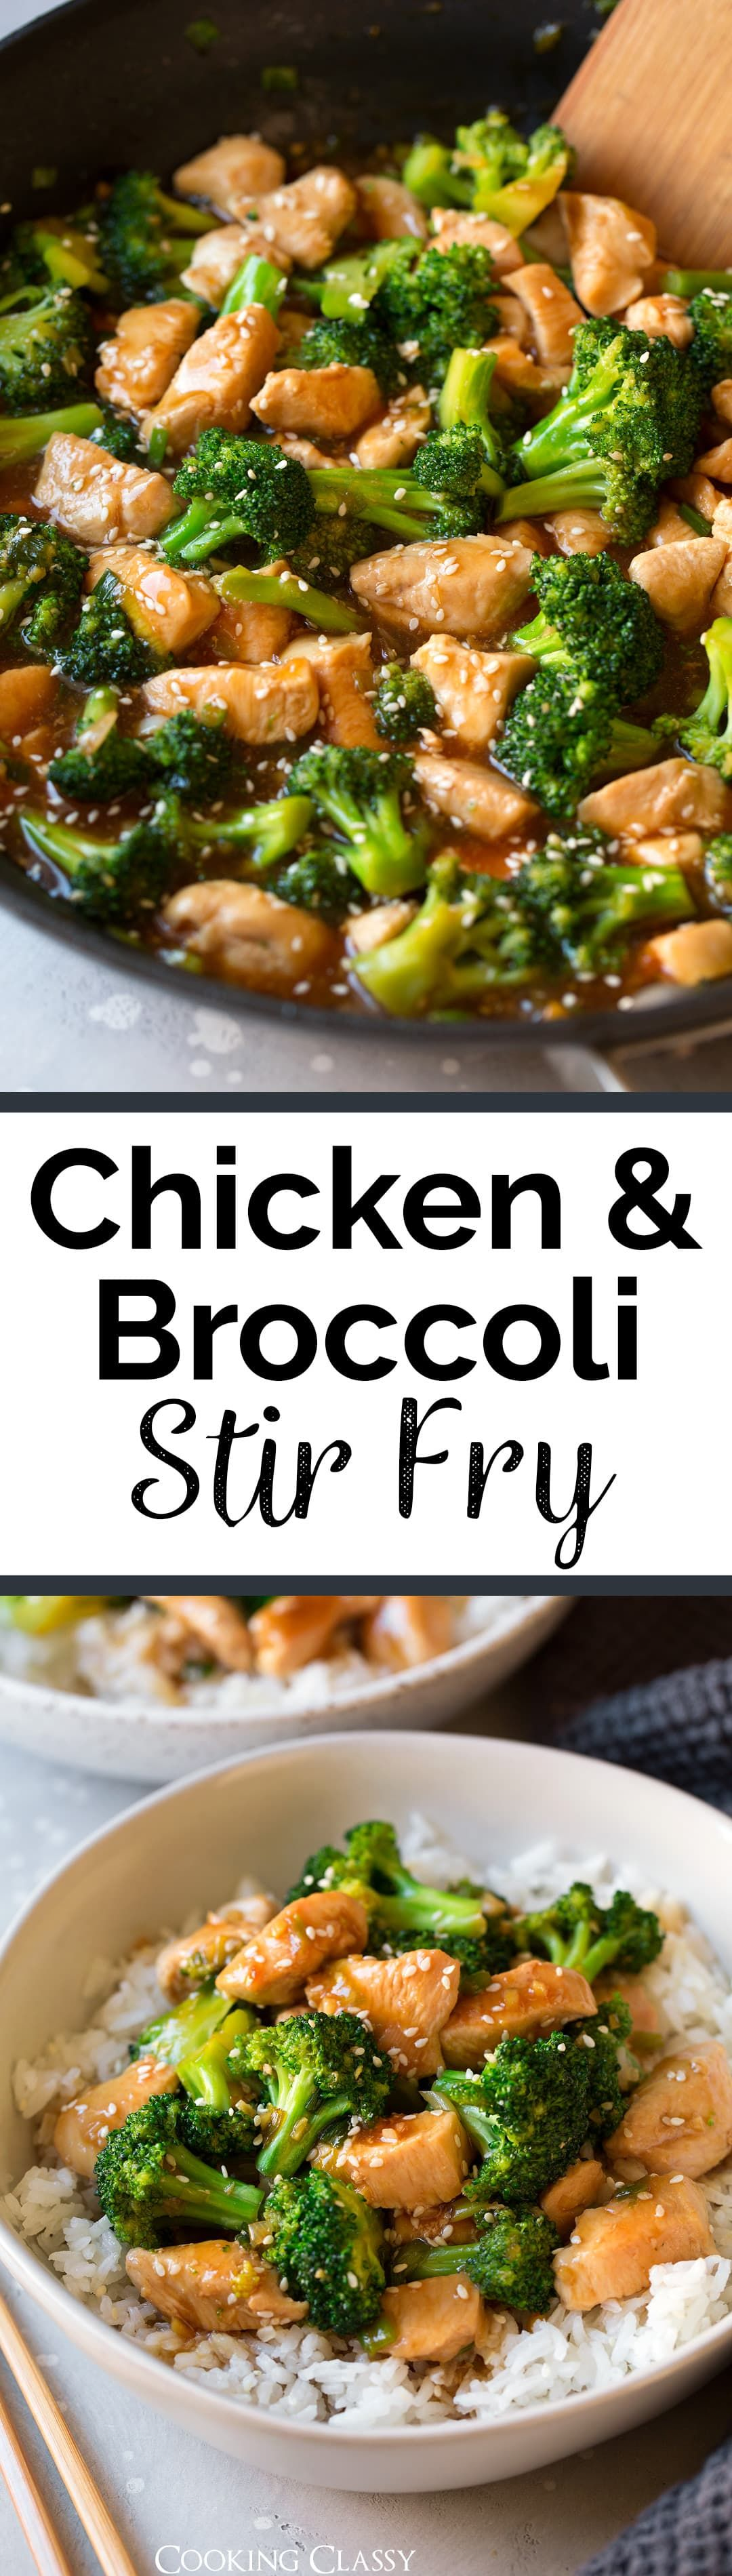 Chicken And Broccoli Stir Fry - Pan Seared Chicken And -2306